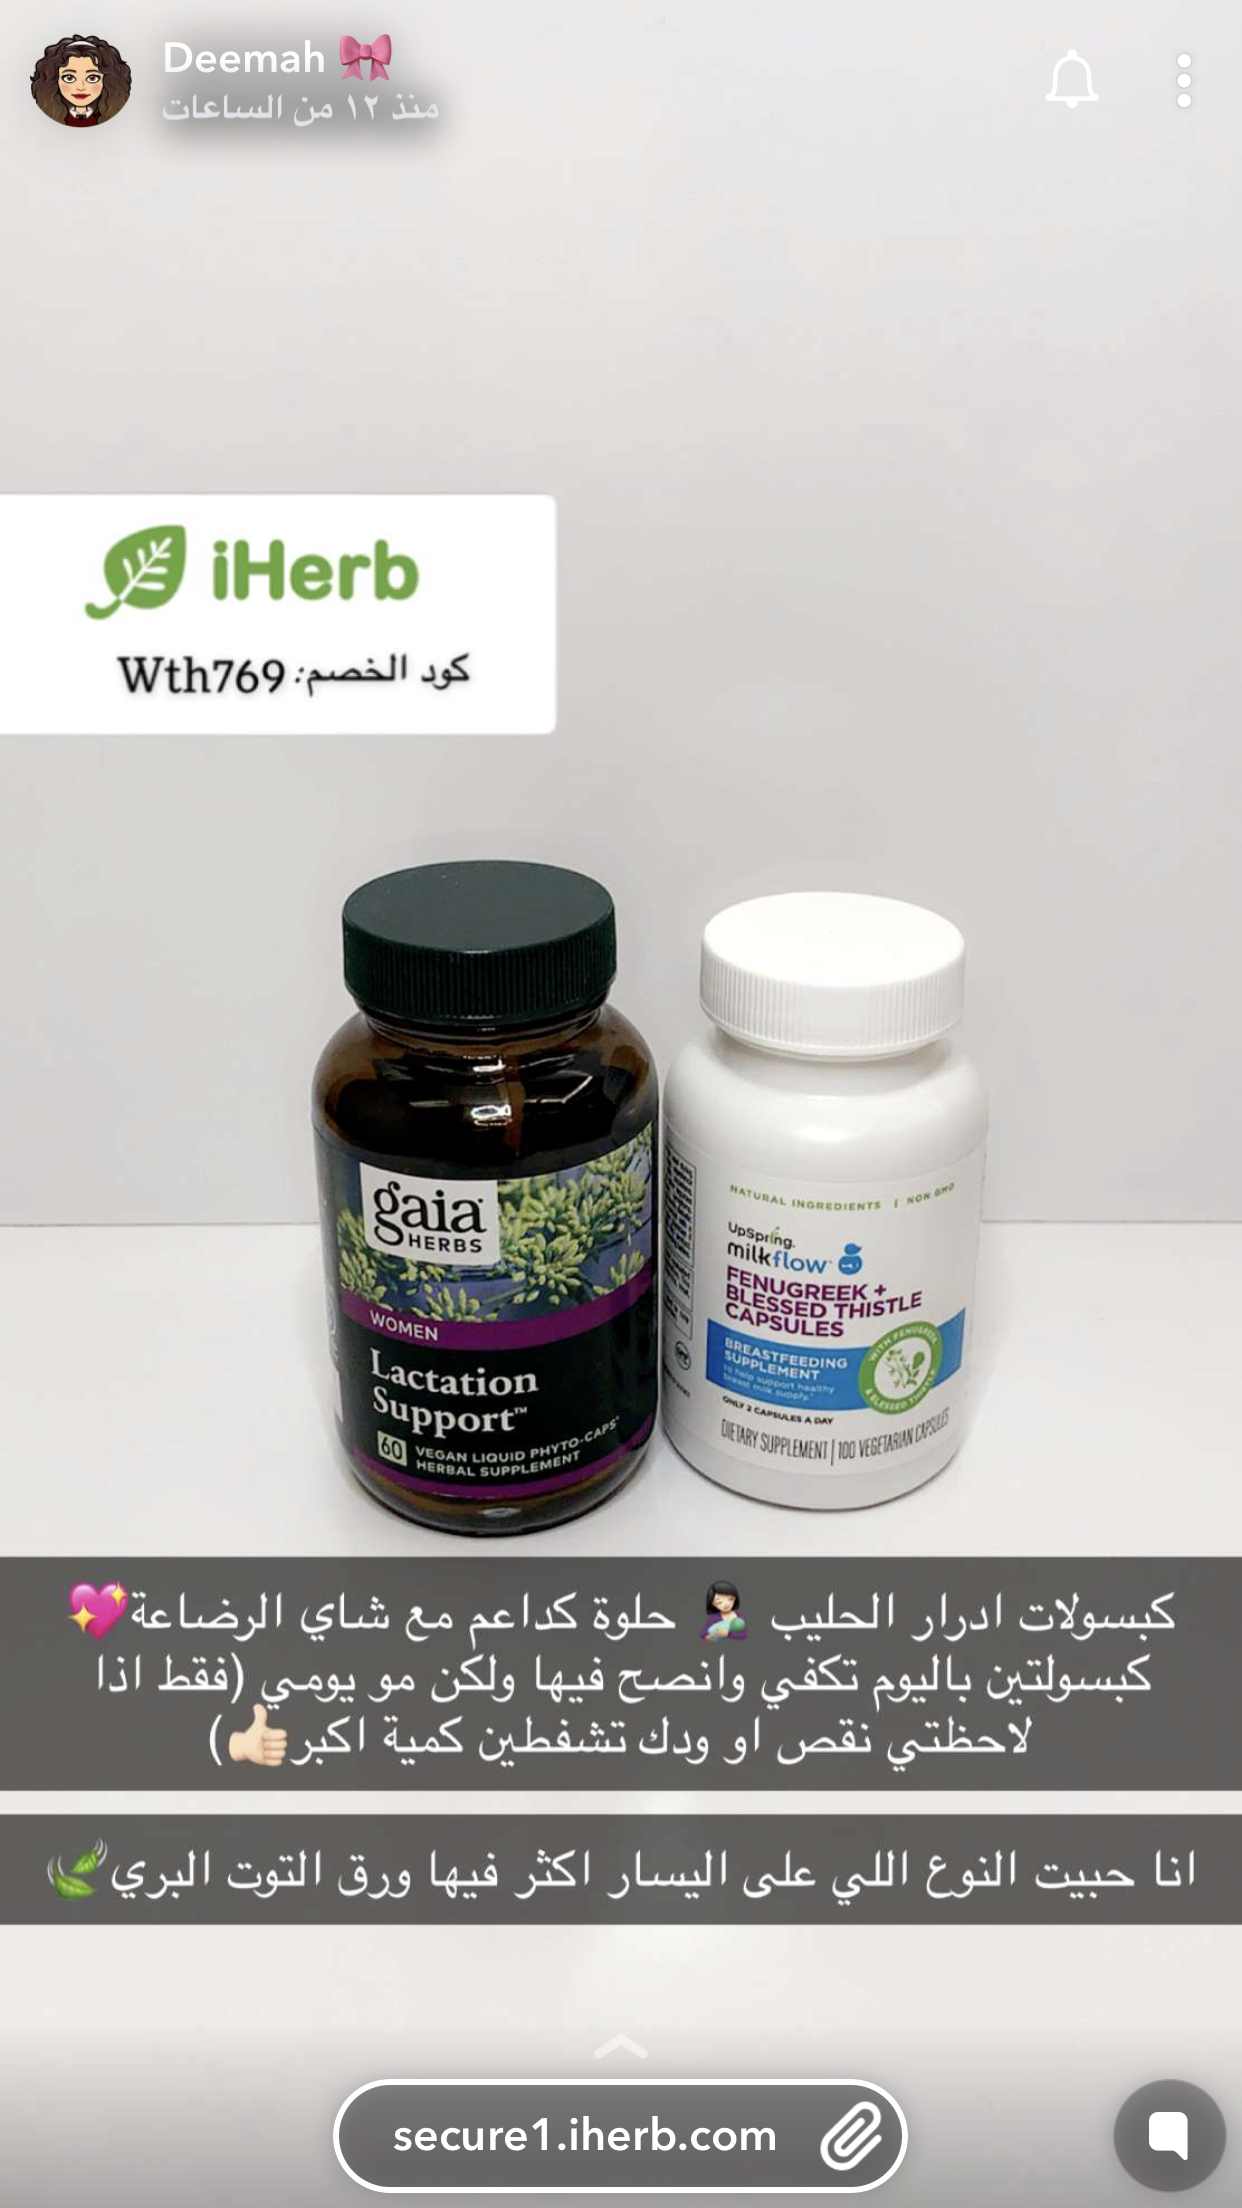 Pin By ː Iss Yaa On ايهيرب Lactation Support Skin Care Iherb